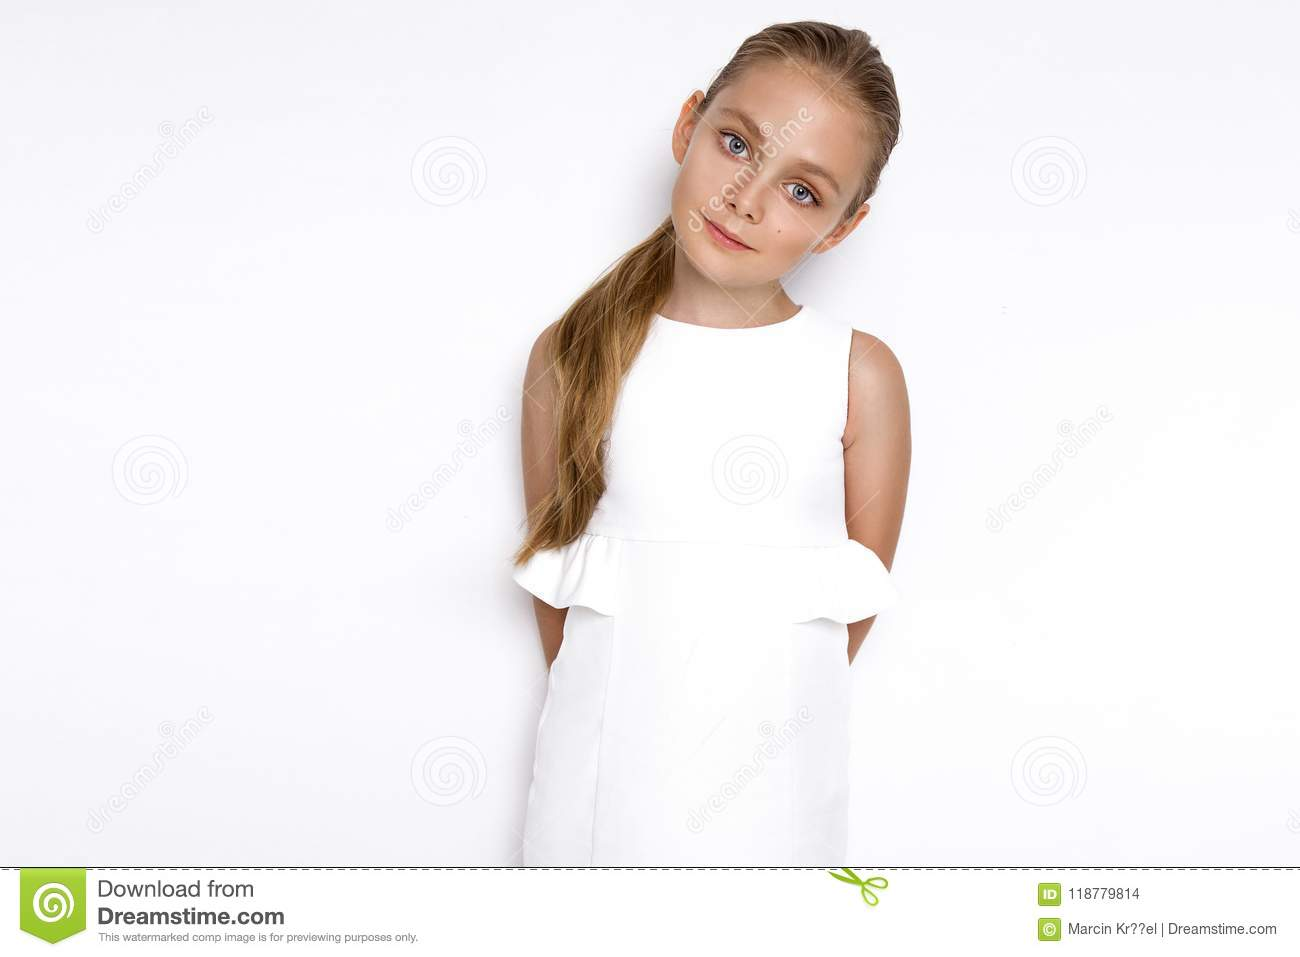 Cute blonde little girl in a white elegant dress, standing on a white background in studio.